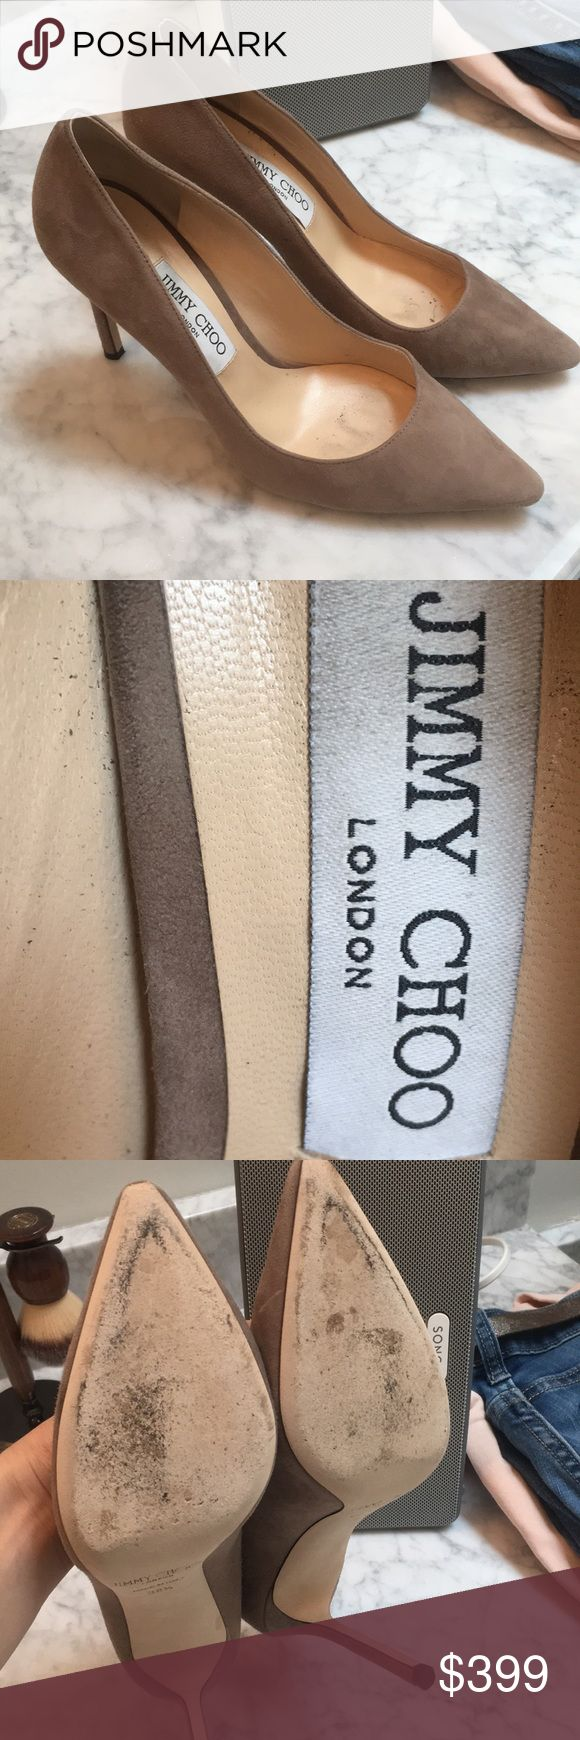 Jimmy Choo grey suede pump s.38.5 Worn 2 times, only flaw is a rice grain size grey mark on 1 heel but a trip to shoe repair and they'll b as new, just don't have  the time to take them. Sale for now, will be returning to my closet if not sold, love them too much and they go w everything. Jimmy Choo Shoes Heels